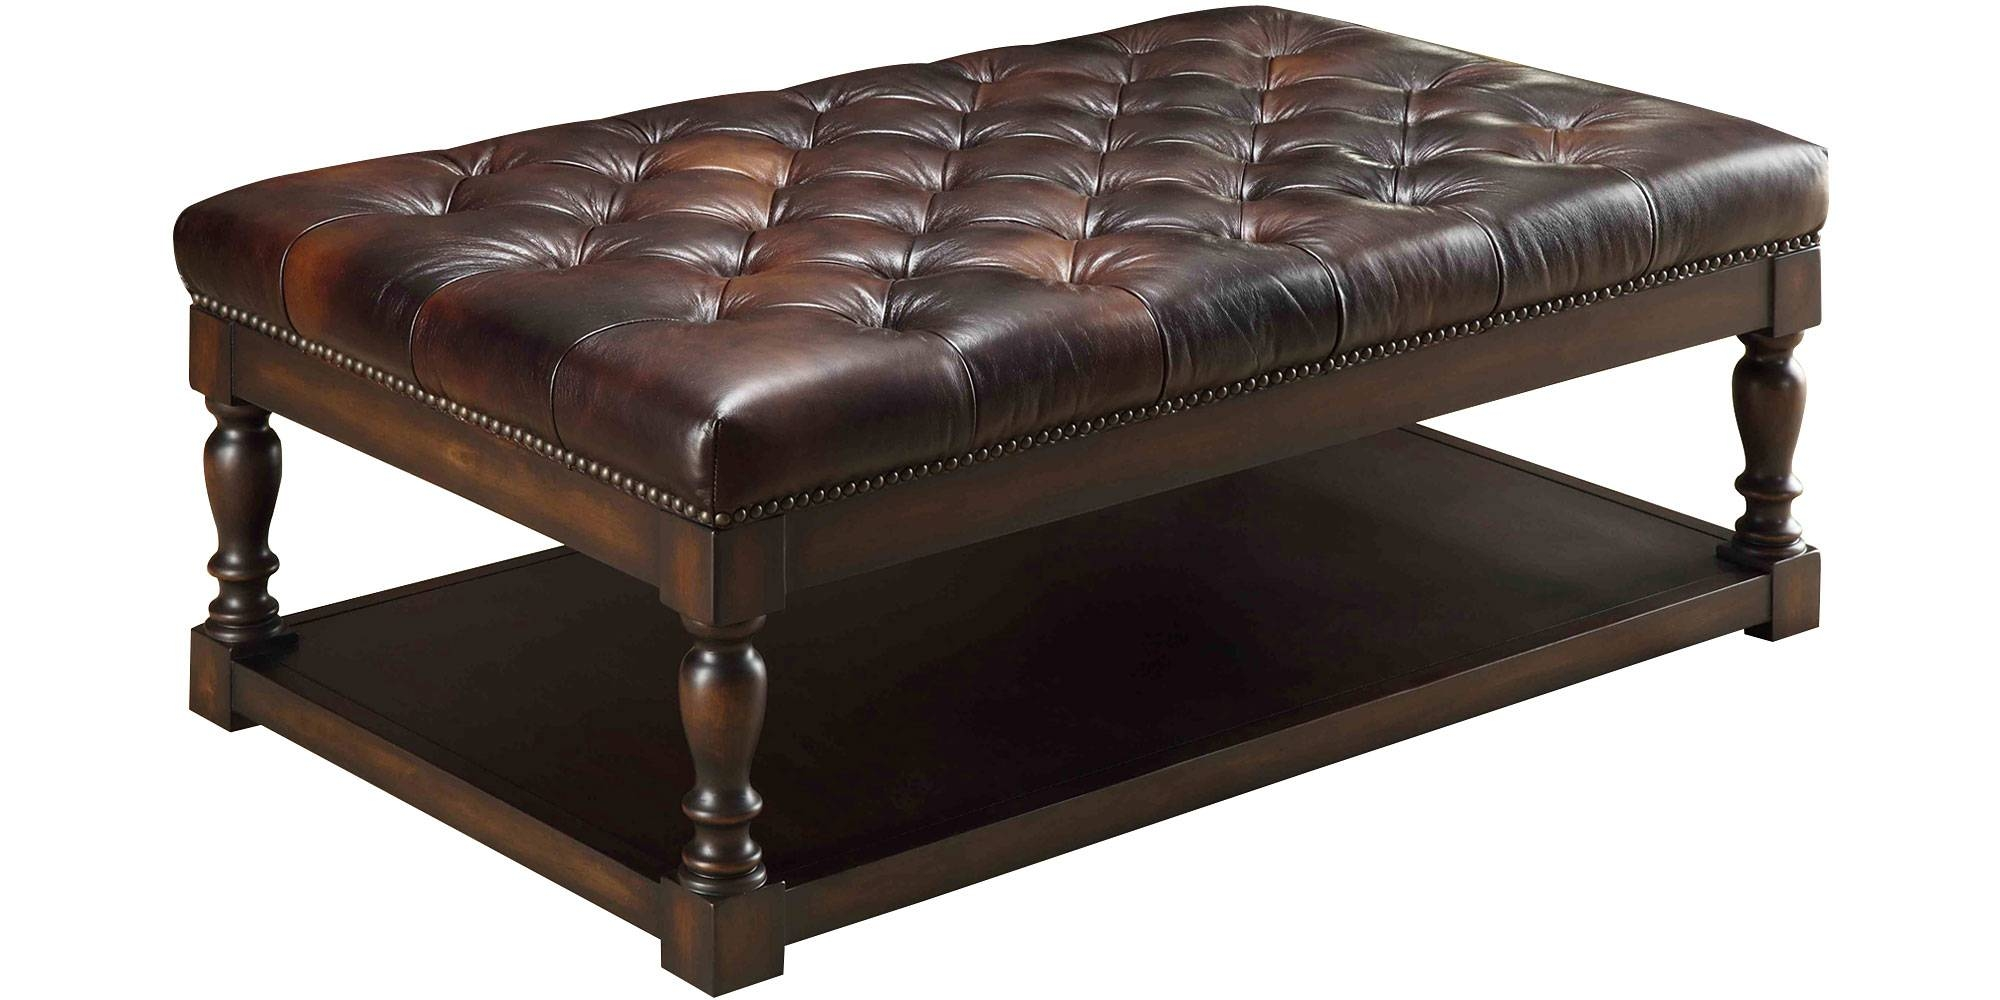 Furniture: Oversized Ottoman Coffee Table For Stylish Living Room regarding Square Coffee Tables With Storage Cubes (Image 13 of 31)